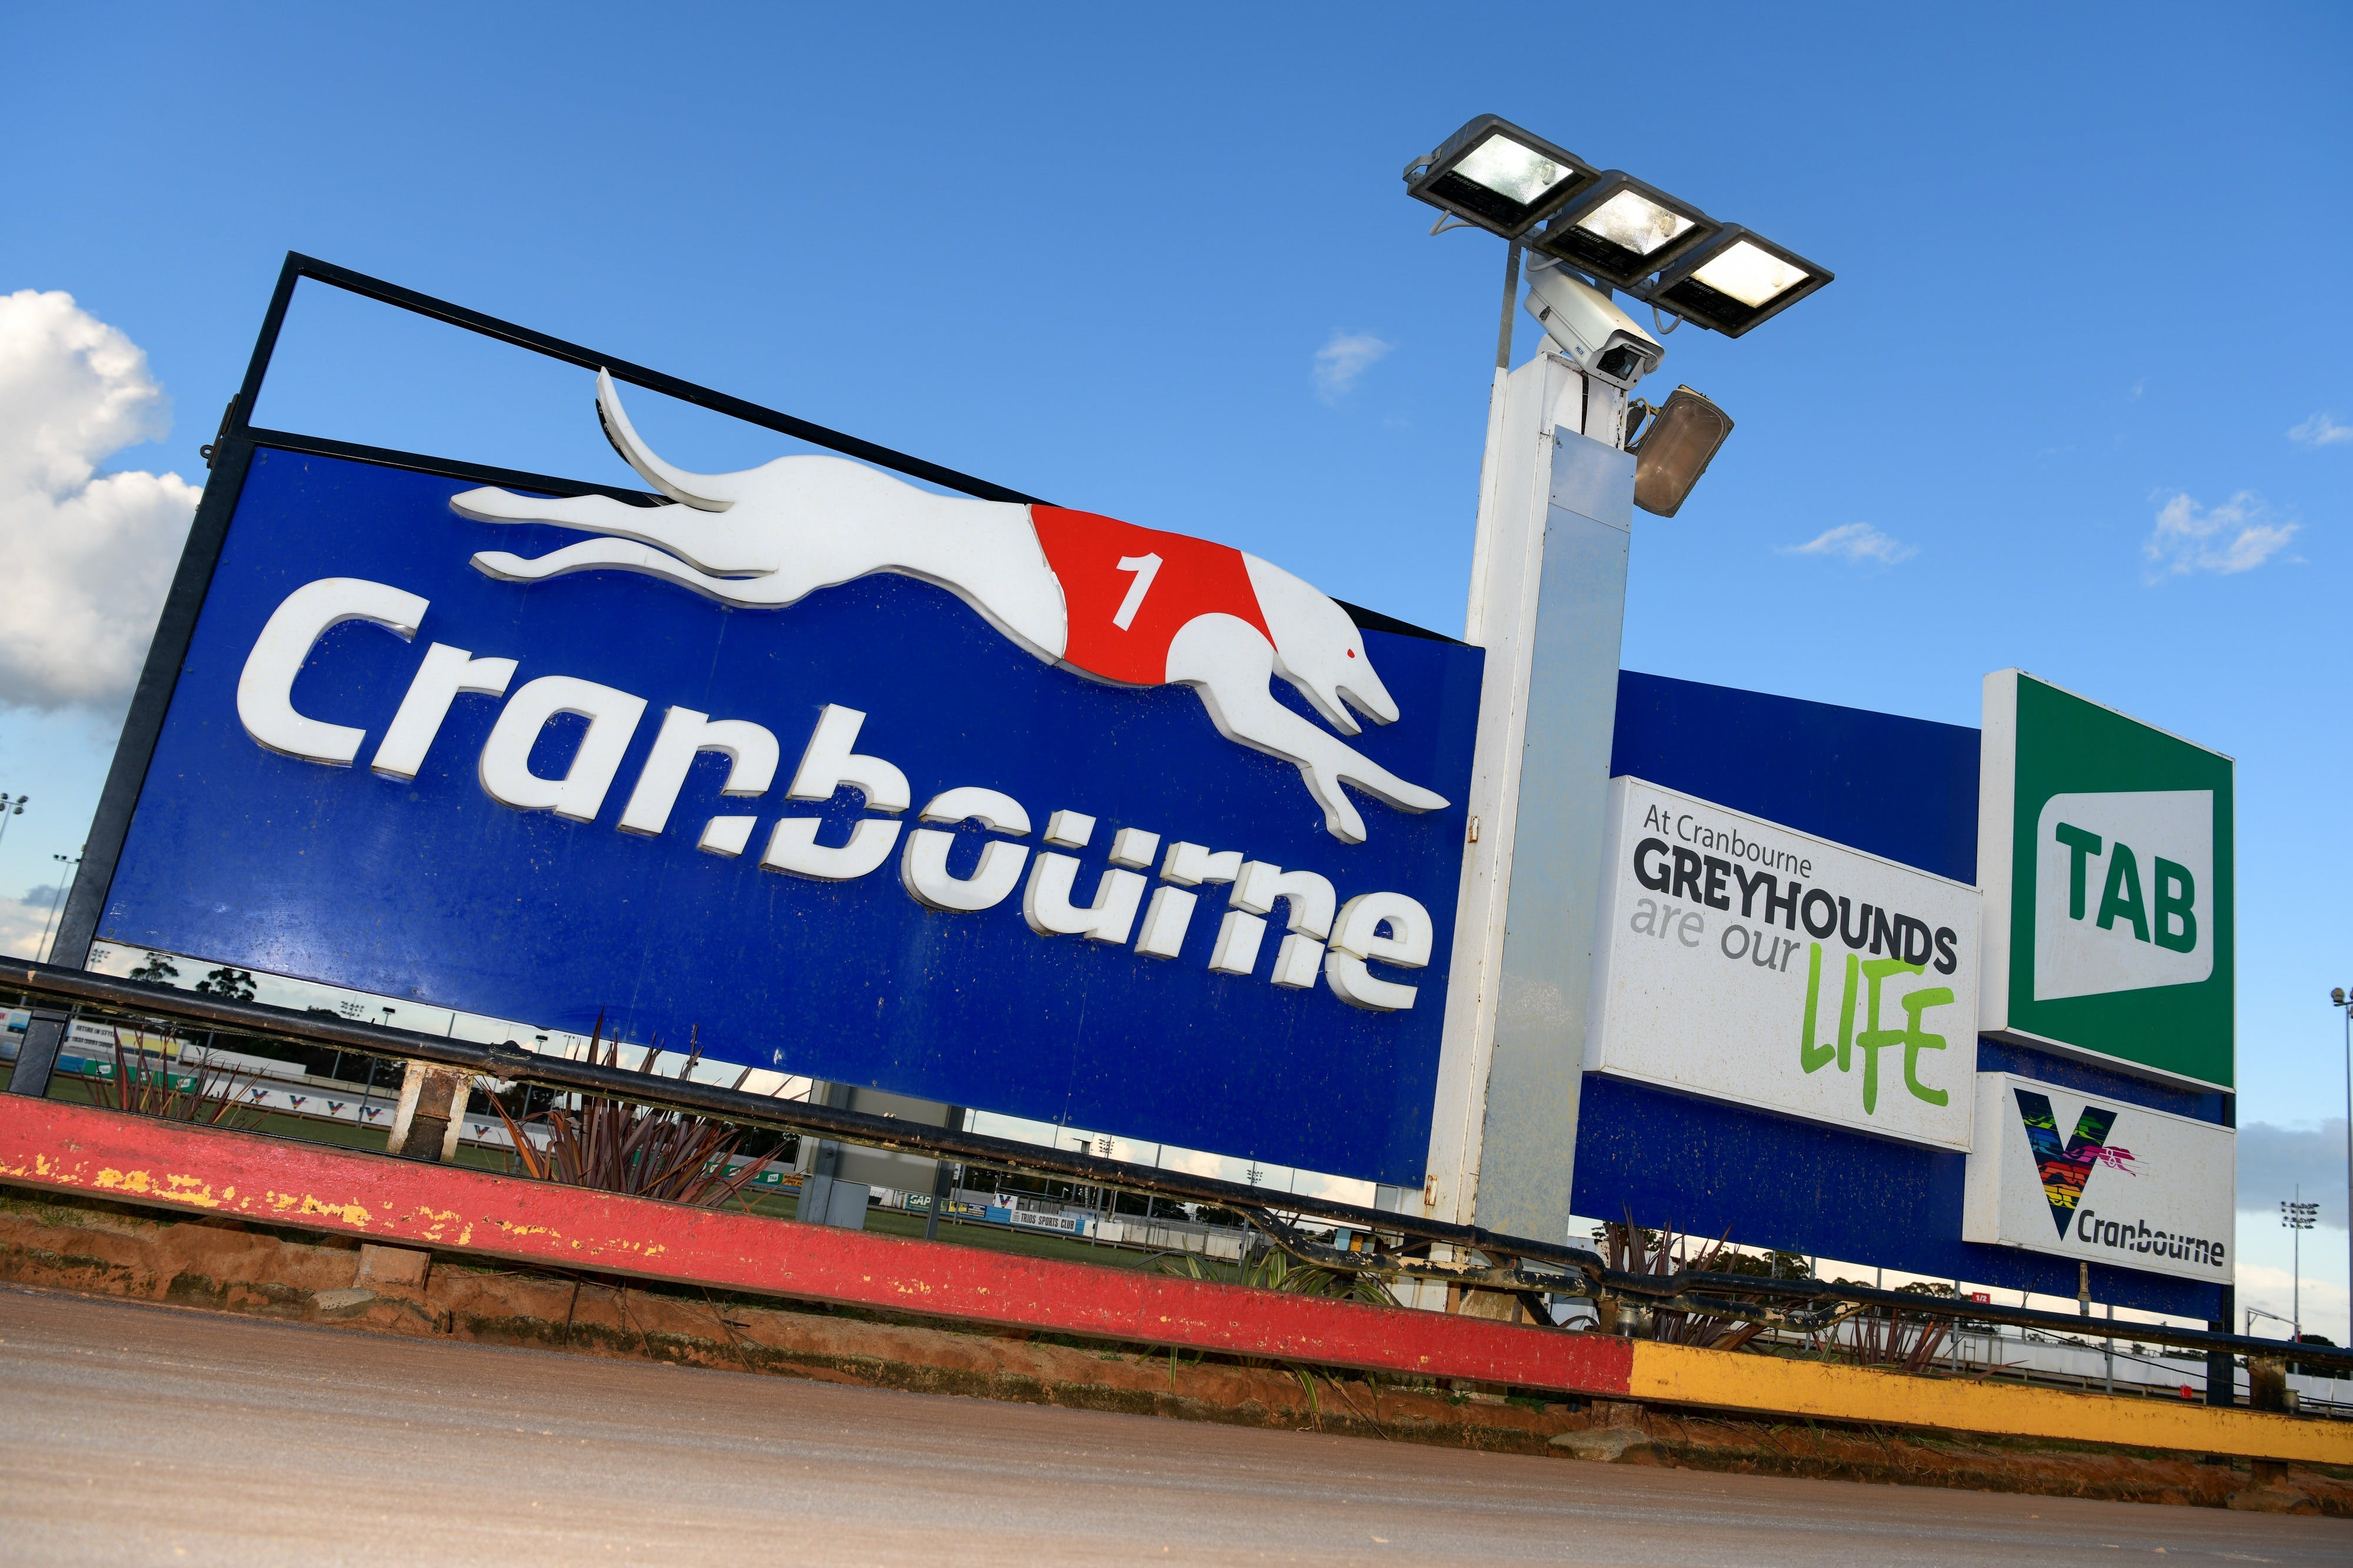 Cranbourne Greyhound Racing Club - VIC Tourism